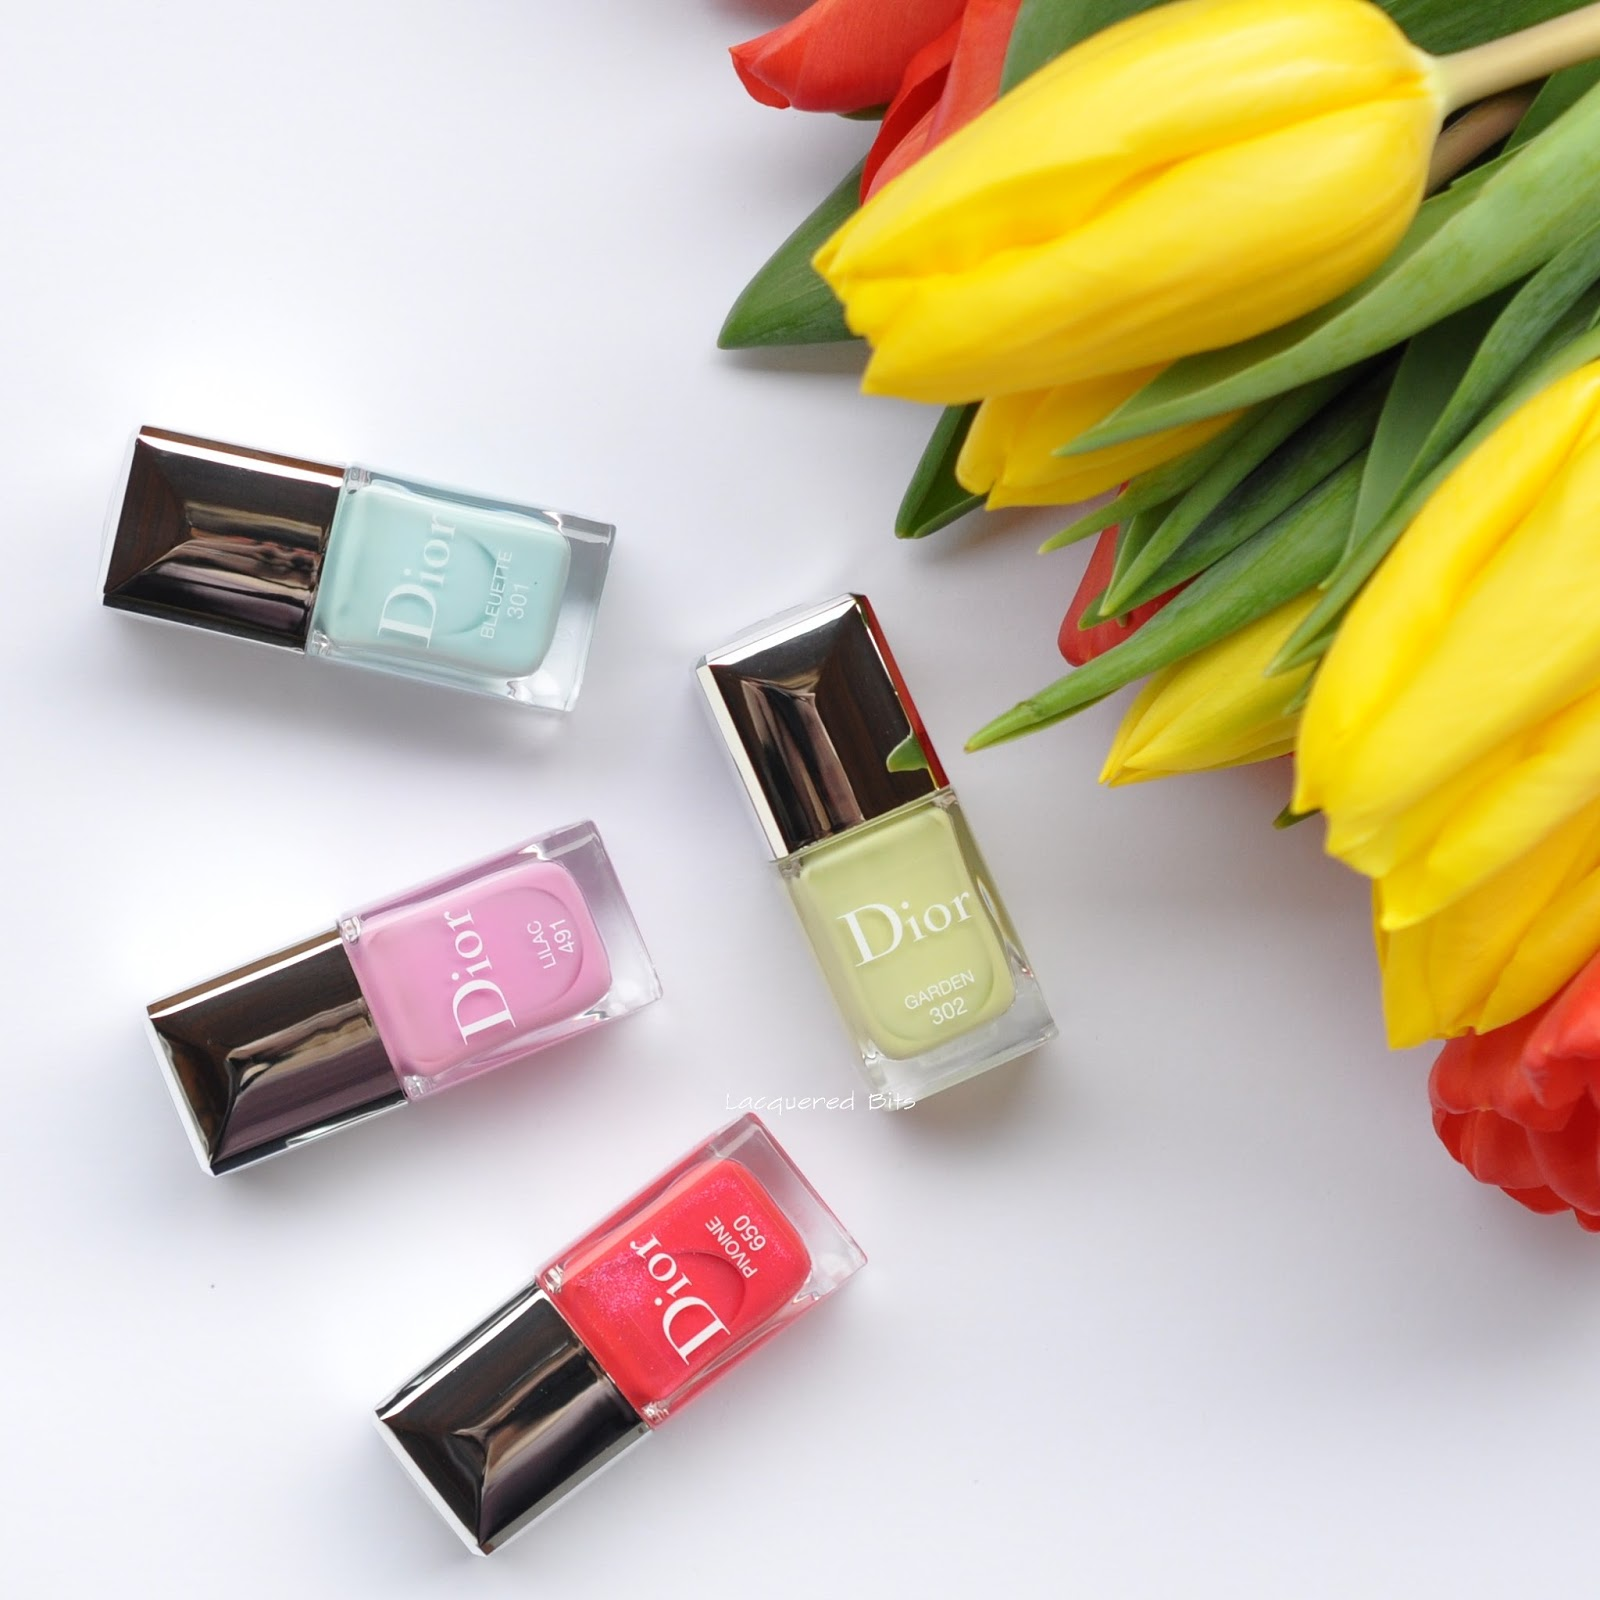 Dior Spring 2016 - Glowing Gardens Collection - Swatches & Review